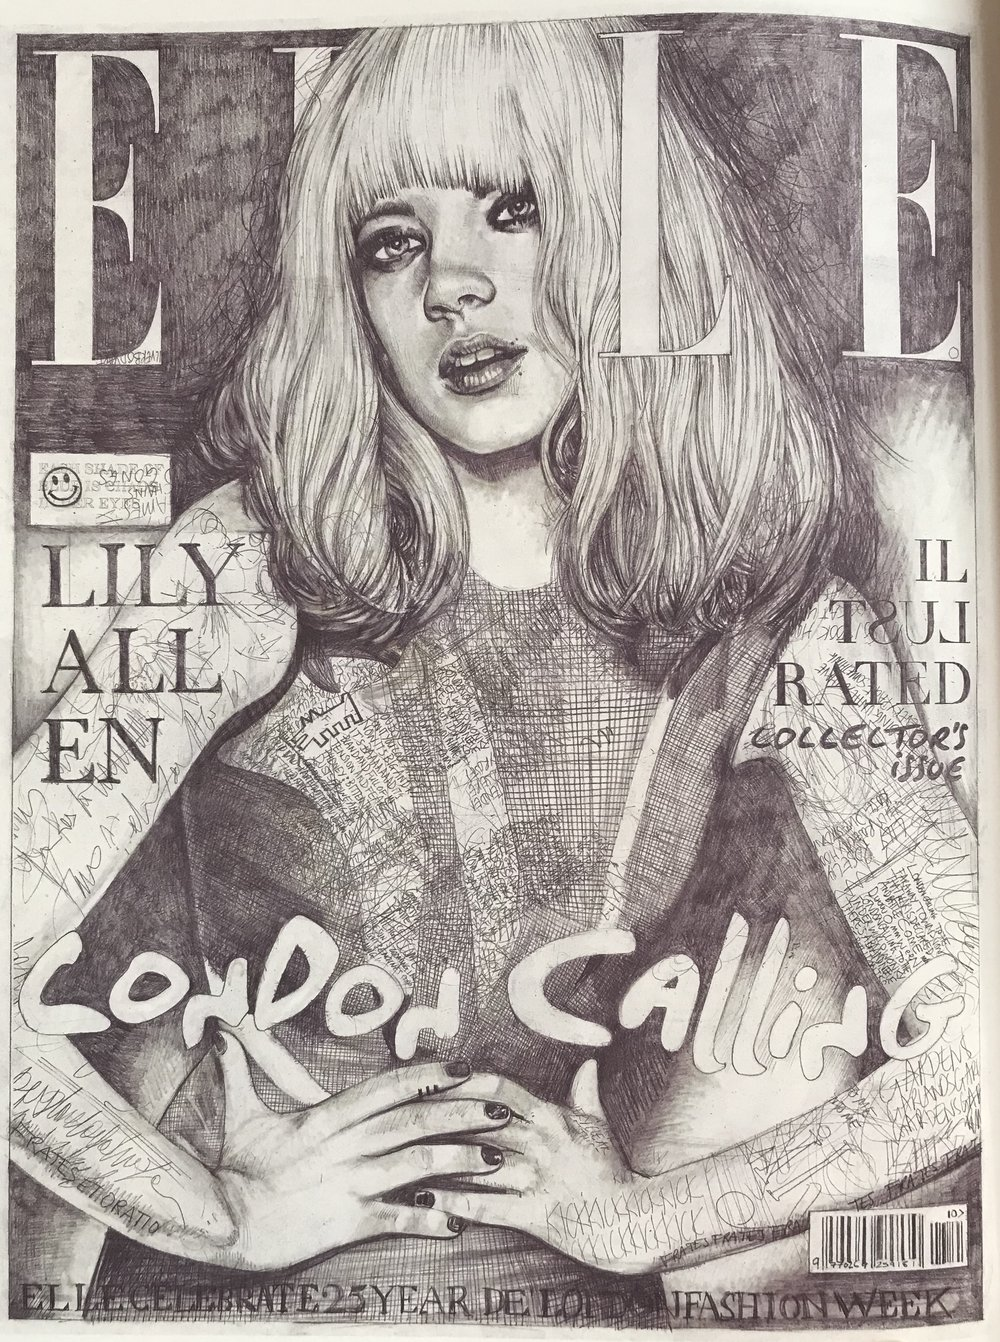 John Paul Thurlow - Cover 92, Lily Allen, British Elle, 2009.  Mechanical pencil on artwork paper 59.4 x 42cm